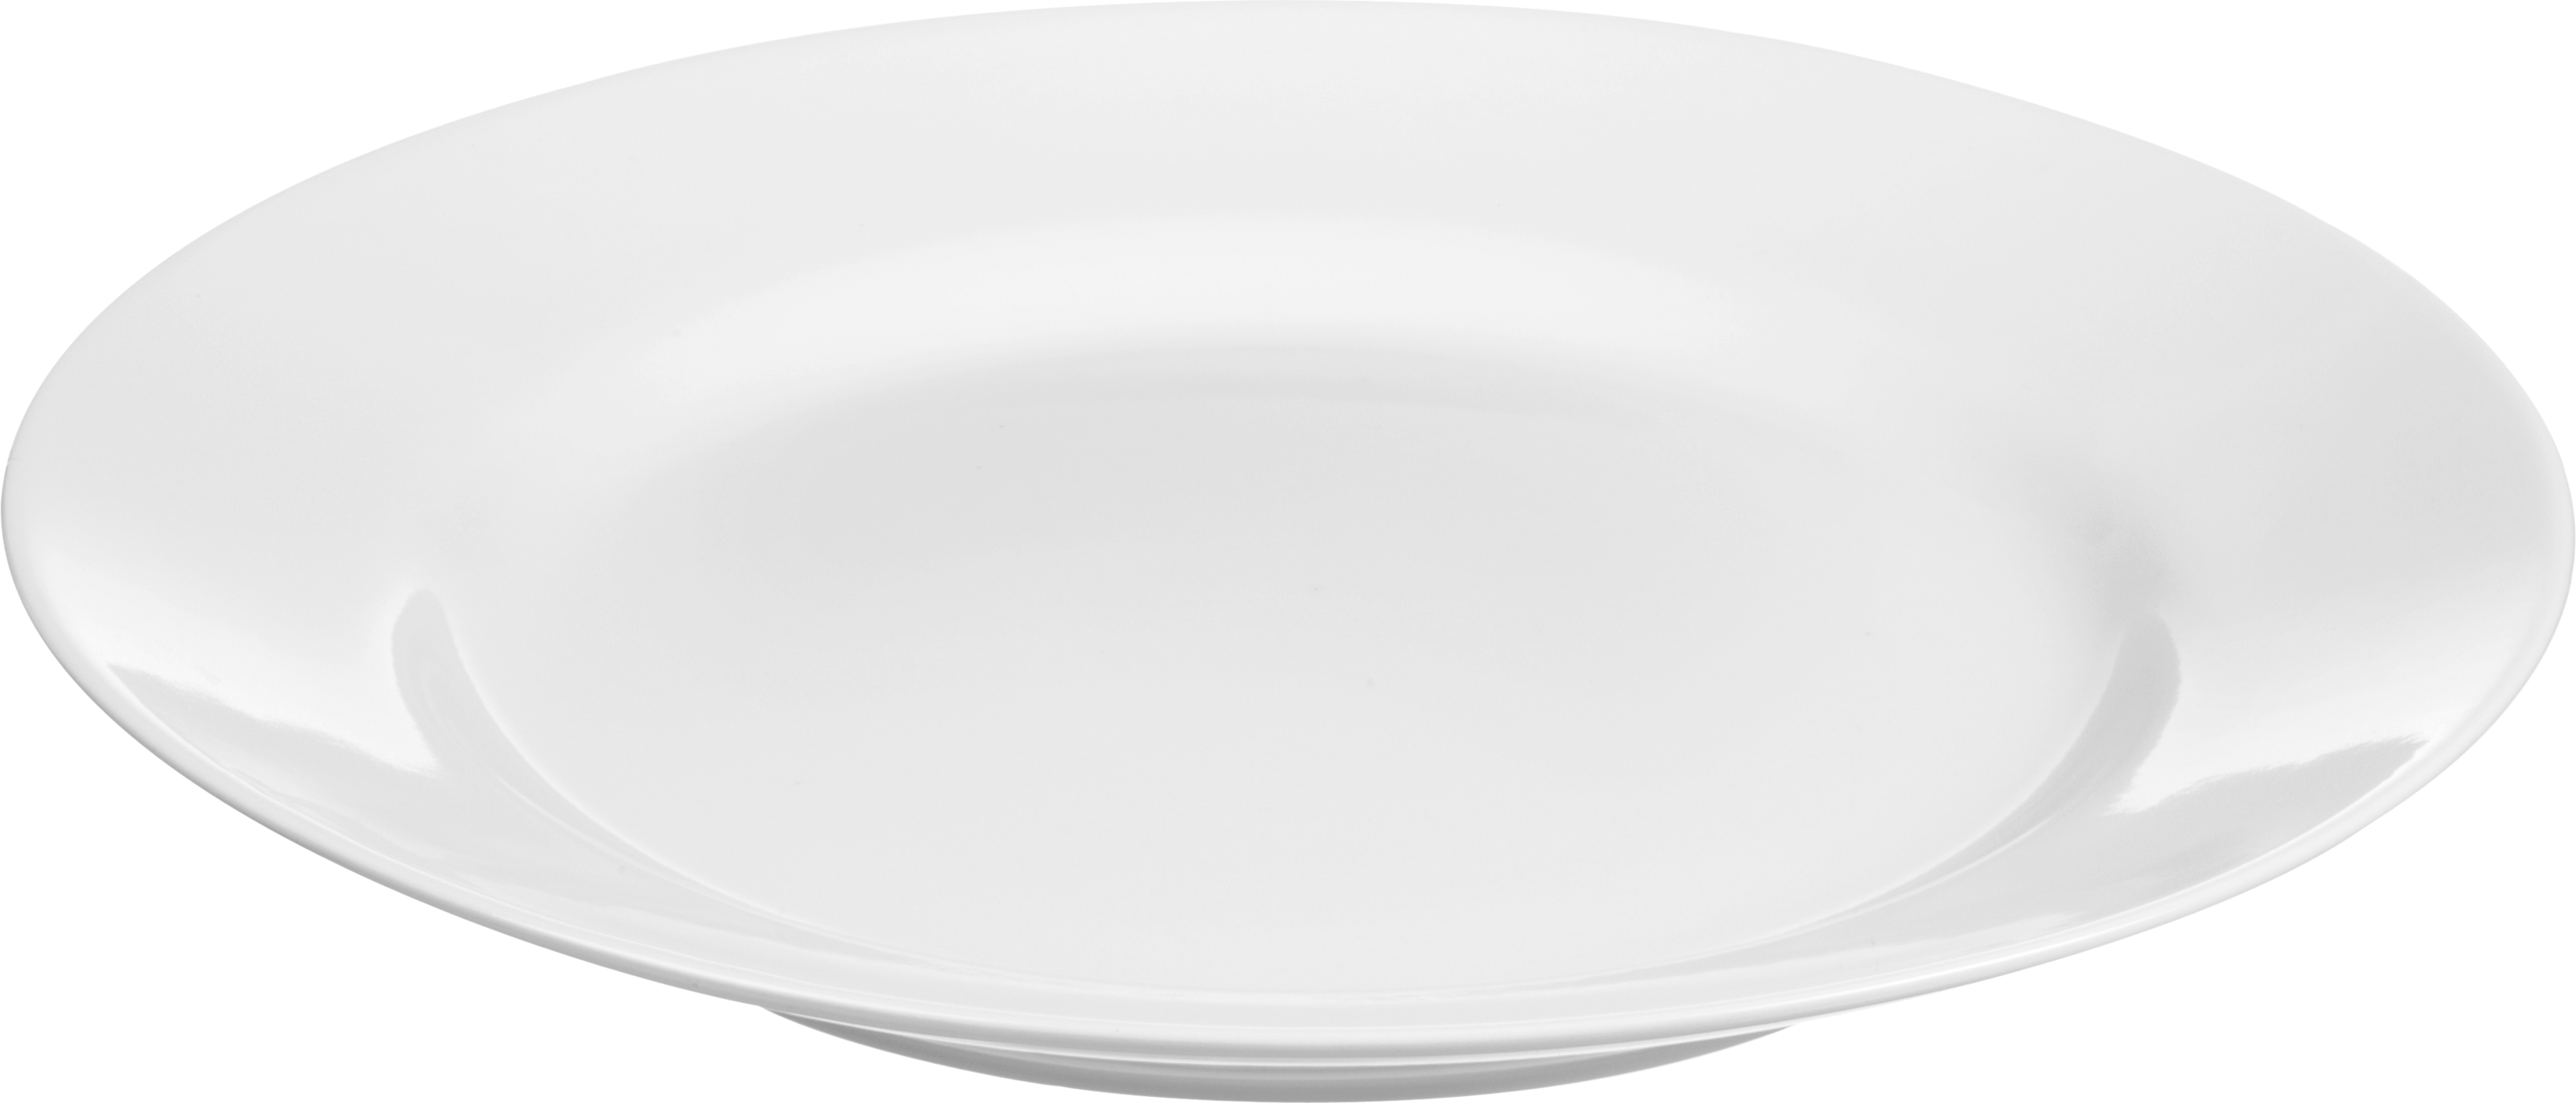 Download Png Image White Plate Png Image Plate Png Plates White Plates